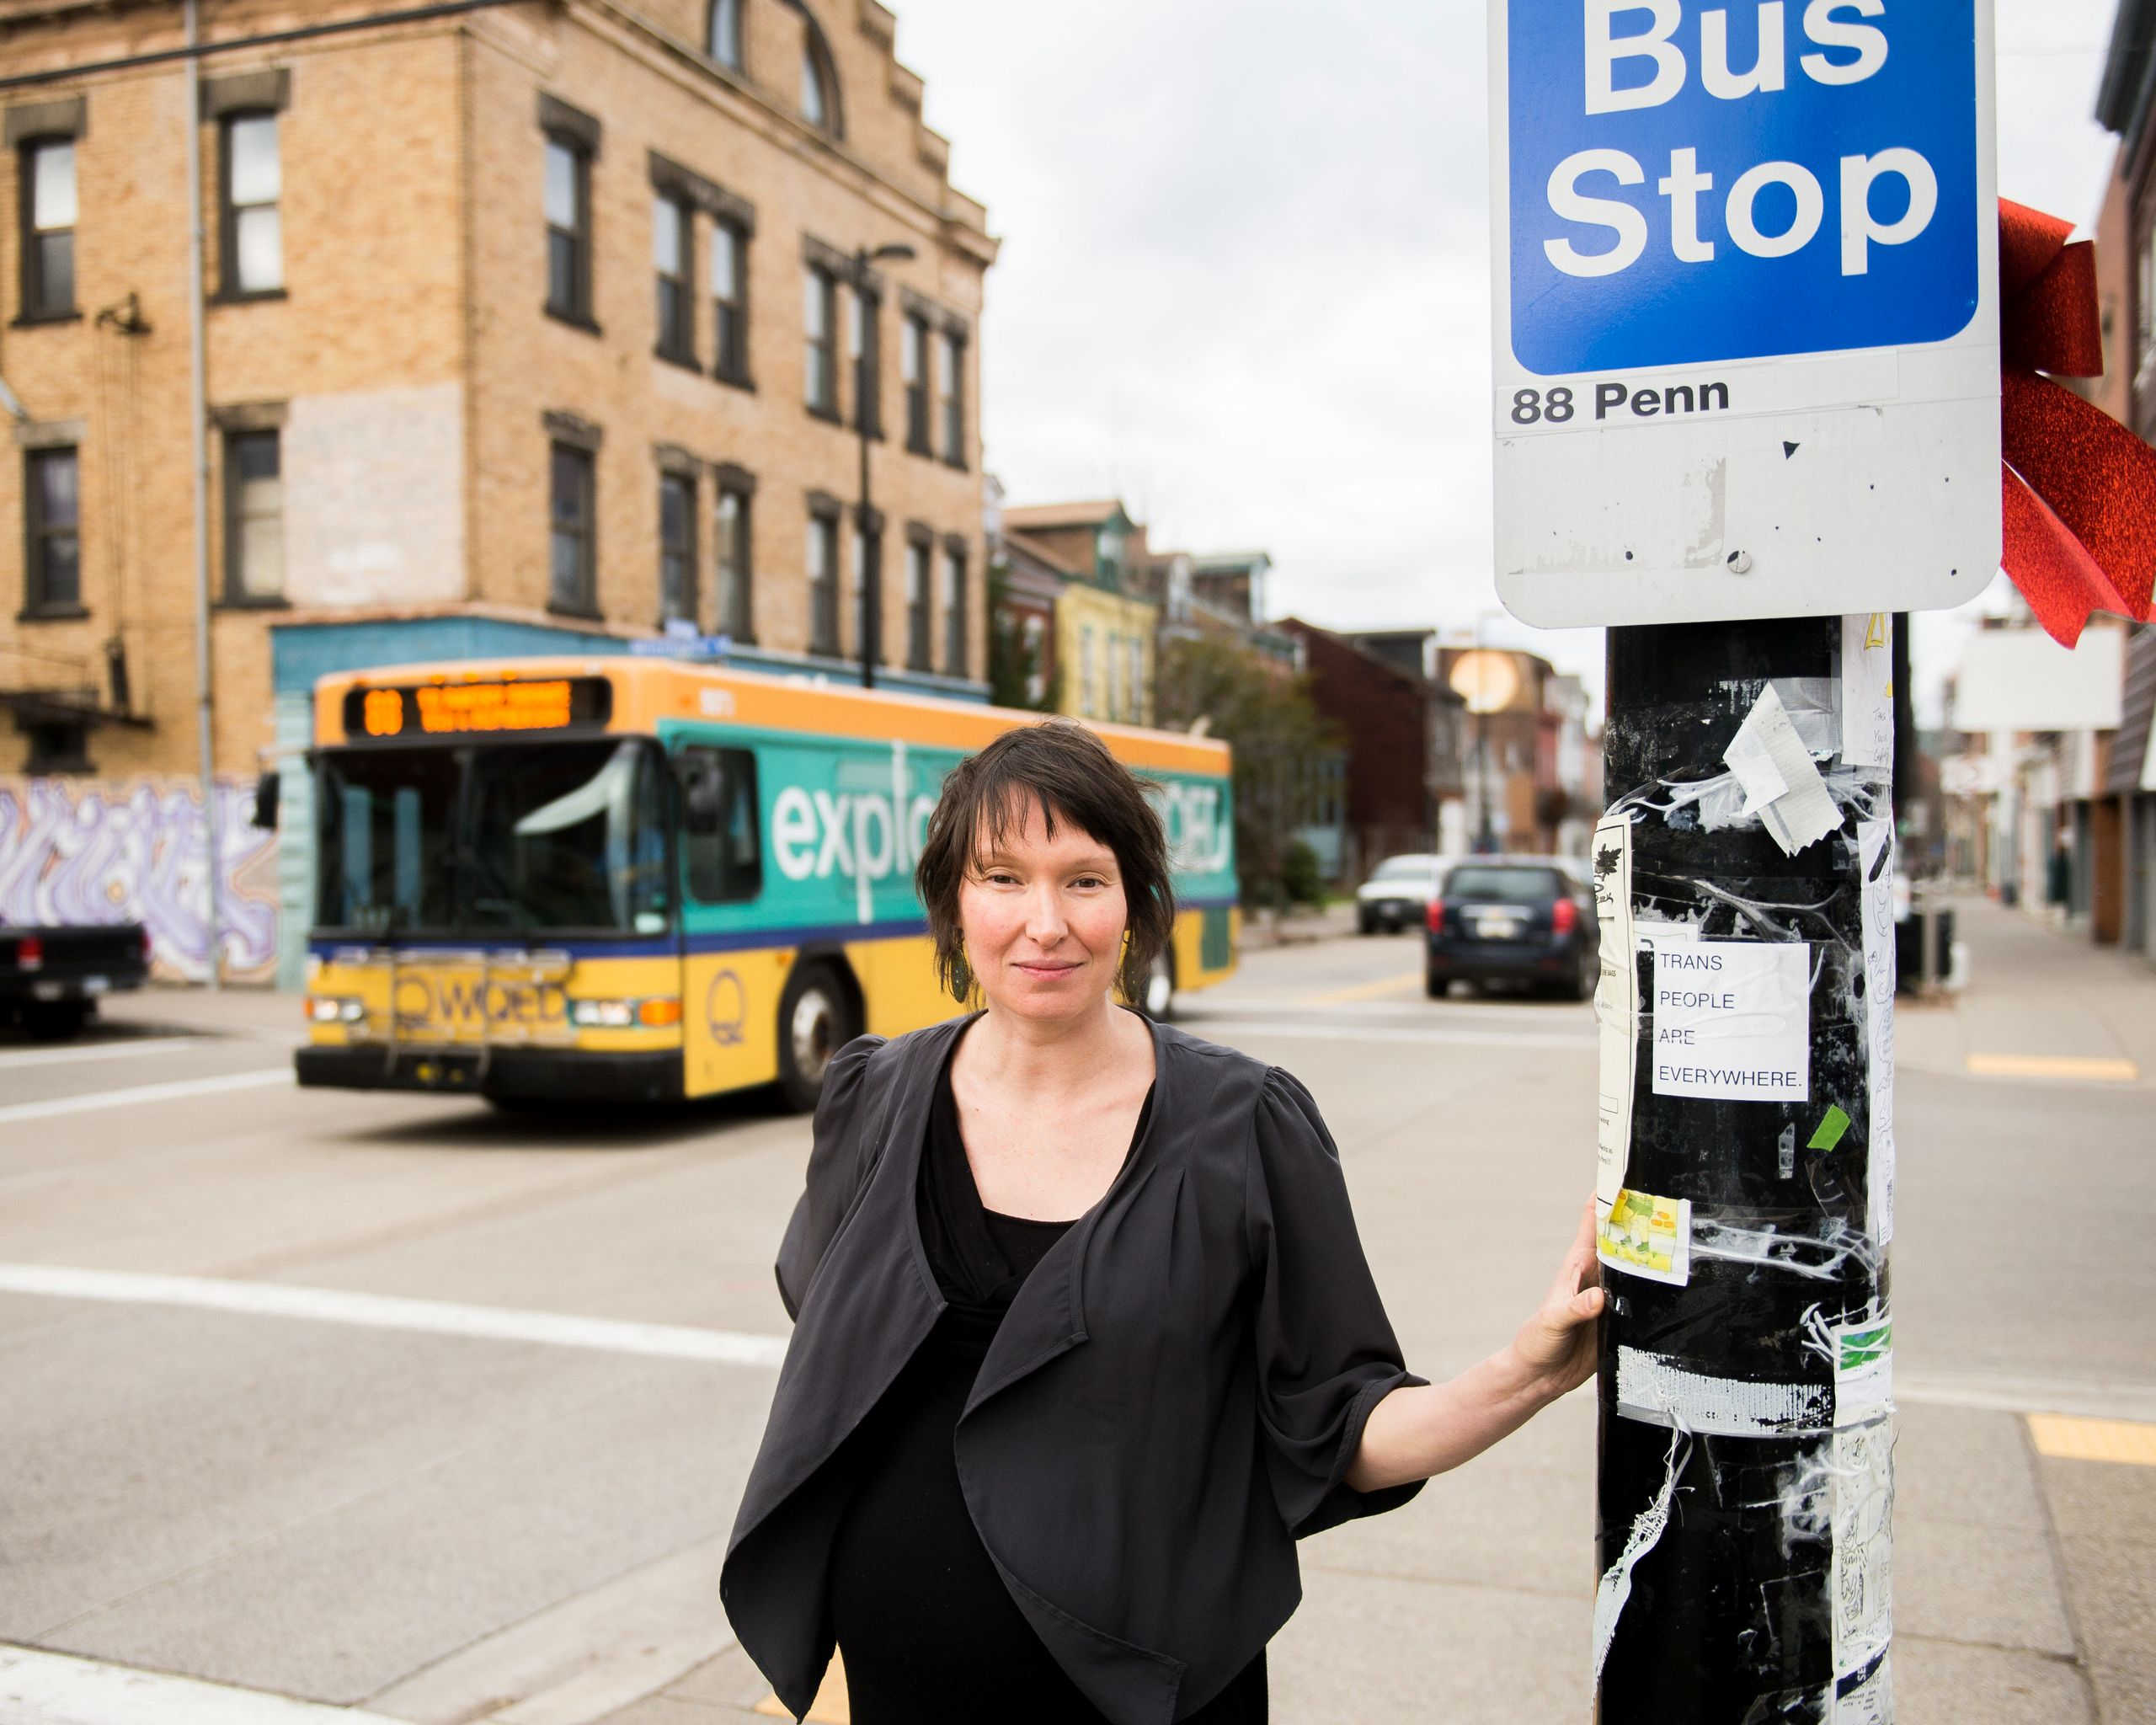 <i></i>Laura Wiens serves as director of Pittsburghers for Public Transit, whose board members include Green.